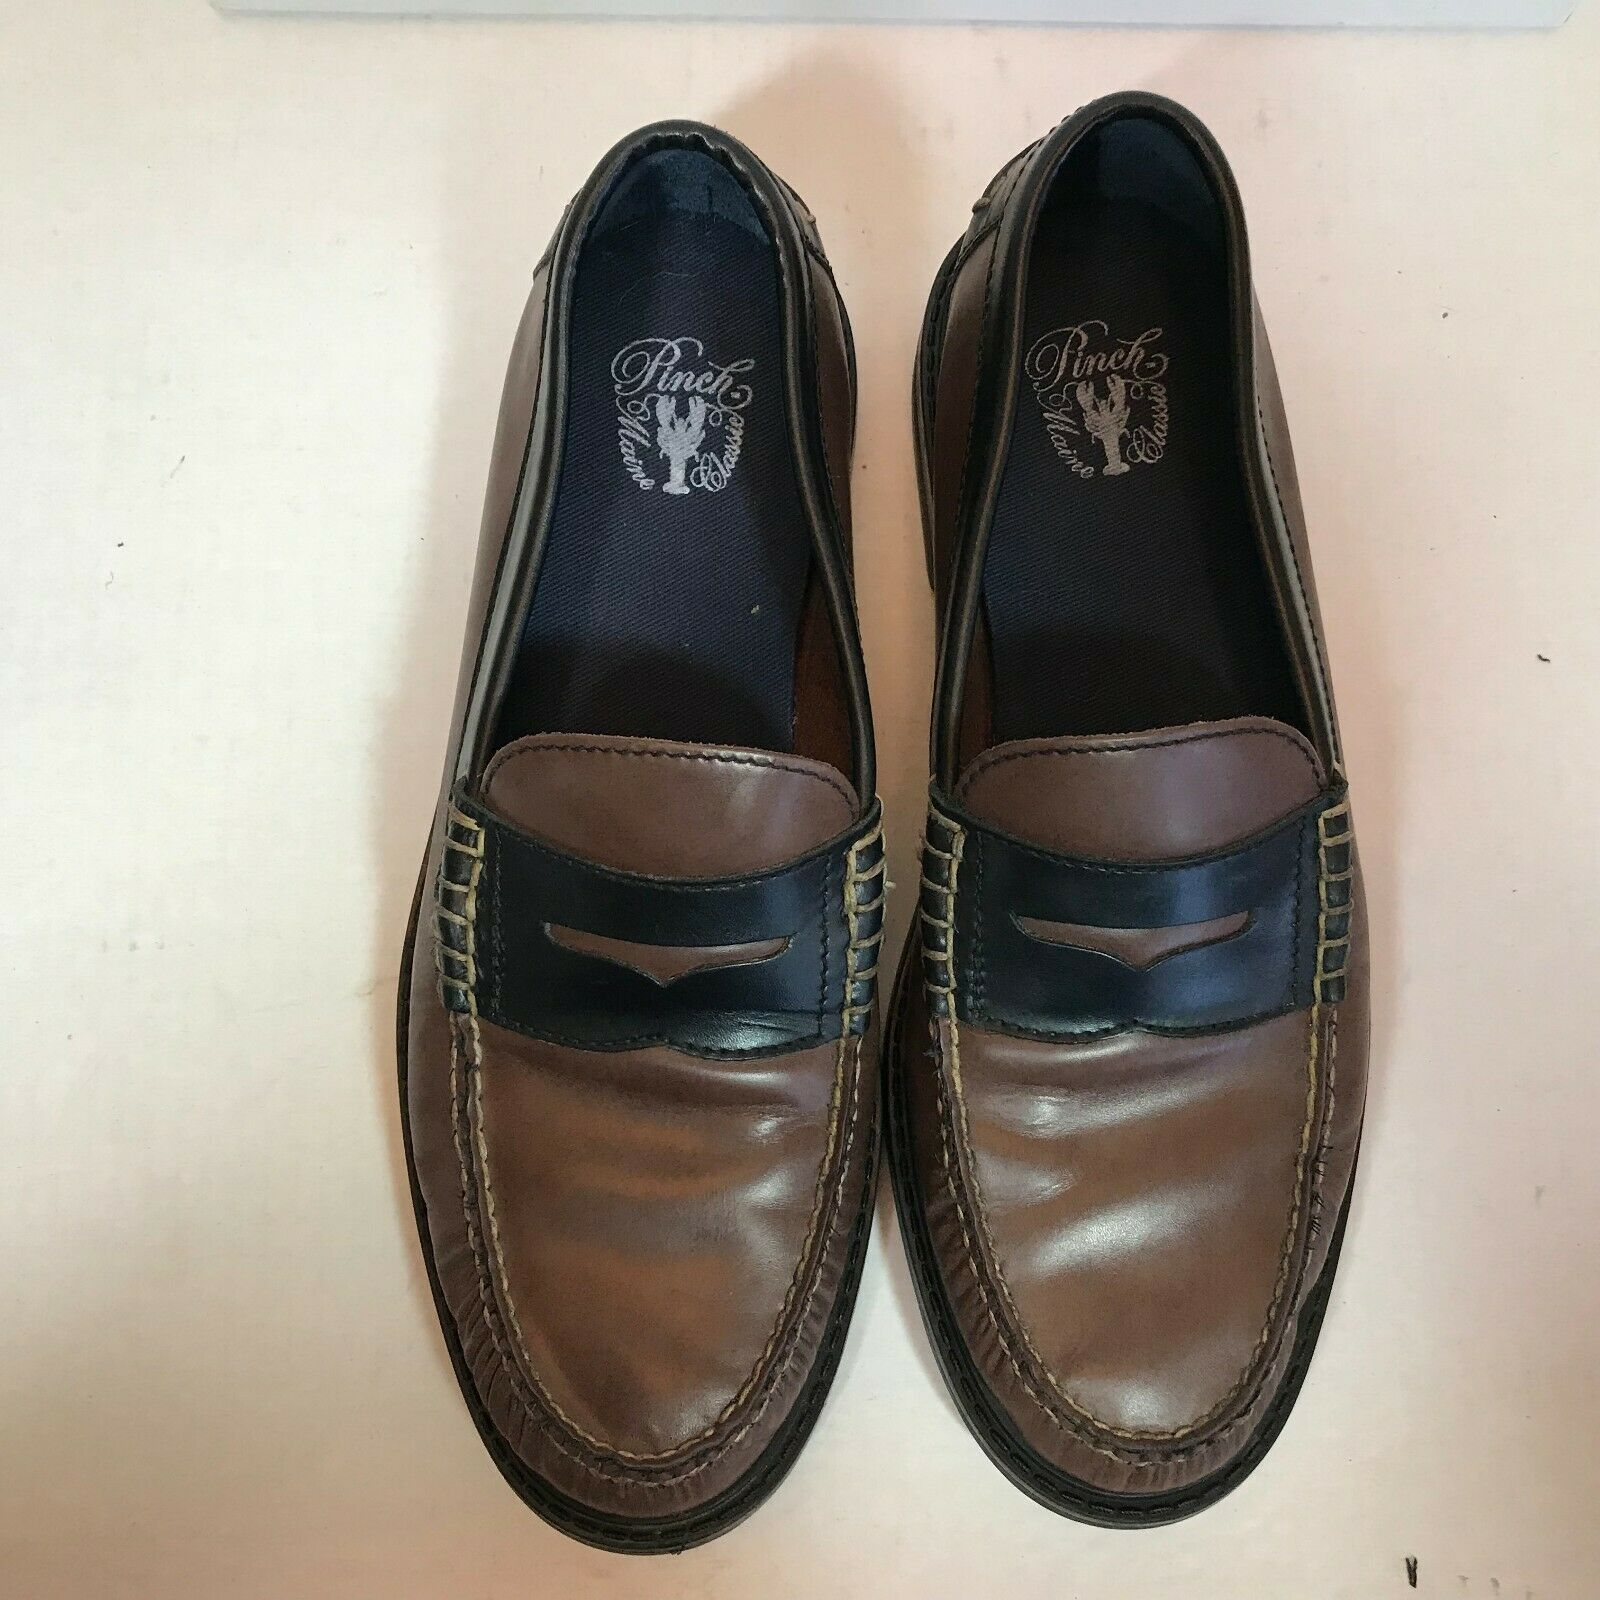 Cole Haan Marronee Leather Leather Leather Pinch Maine Classic Penny Loafers Uomo 9 M Penny loafer d3f238